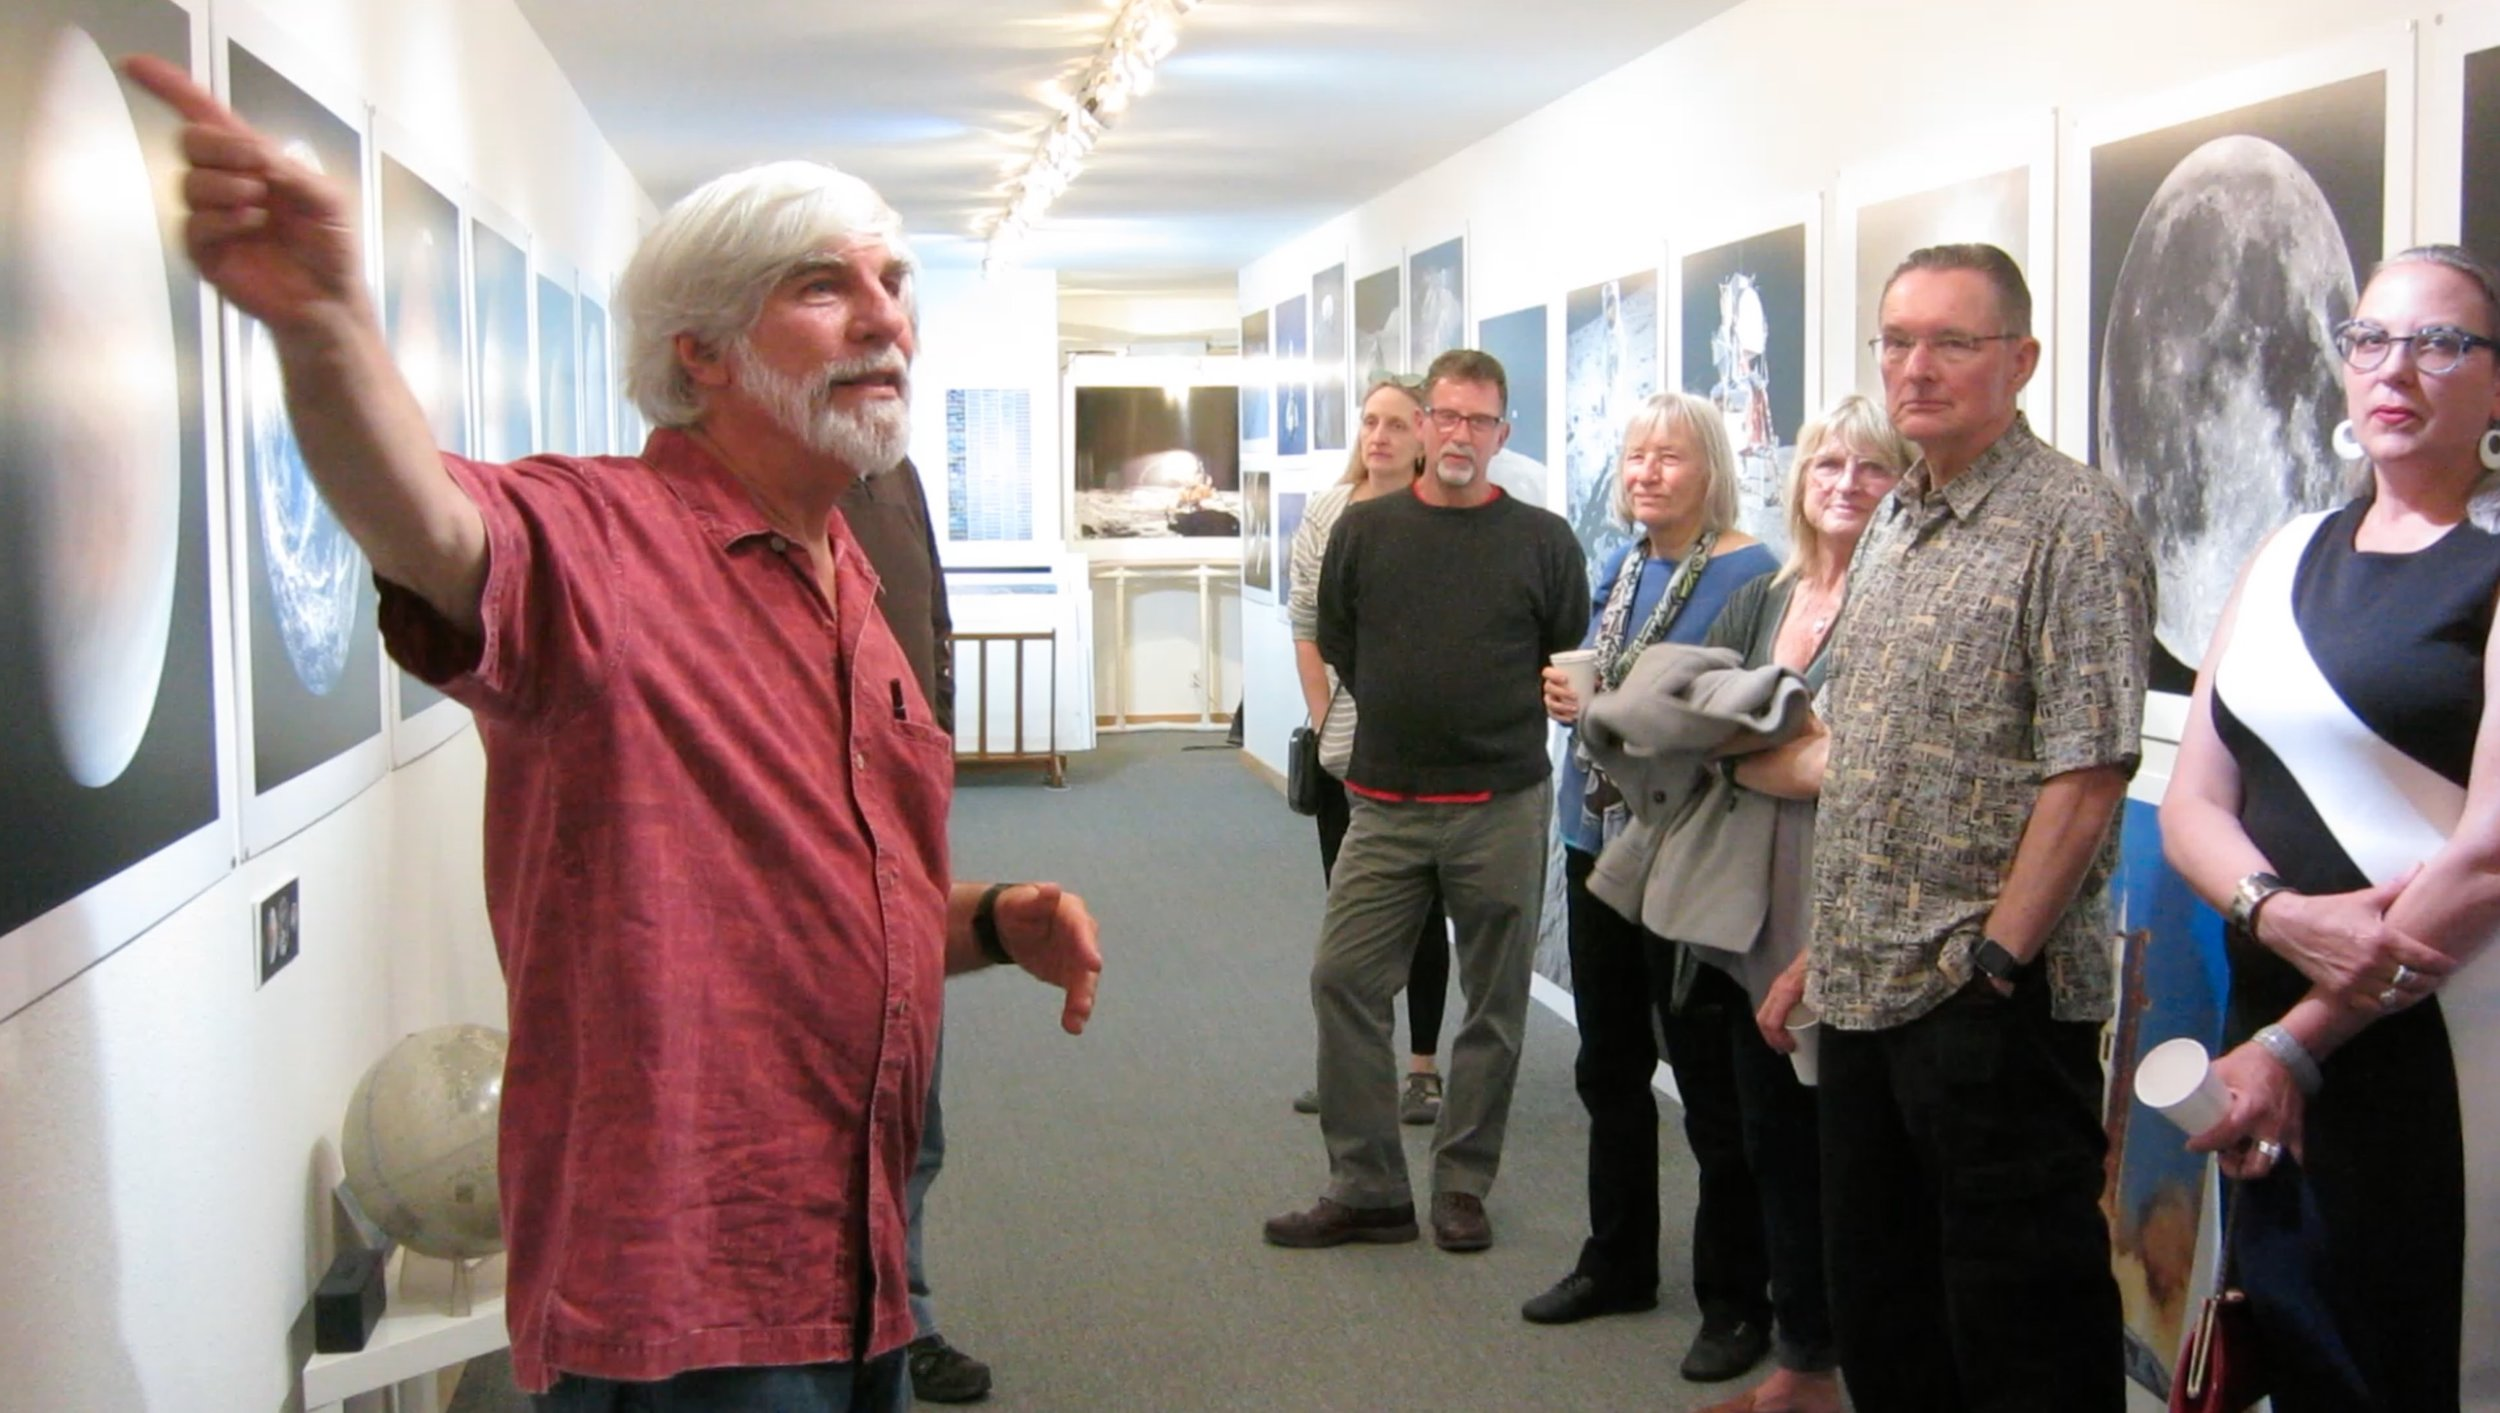 Steve presenting the 50 Years of Space Photography Exhibit. Landing Party. Stephen Johnson Photography. Pacifica Center for the Arts. July 20, 2019. from video frame by Fiona McDonnell.